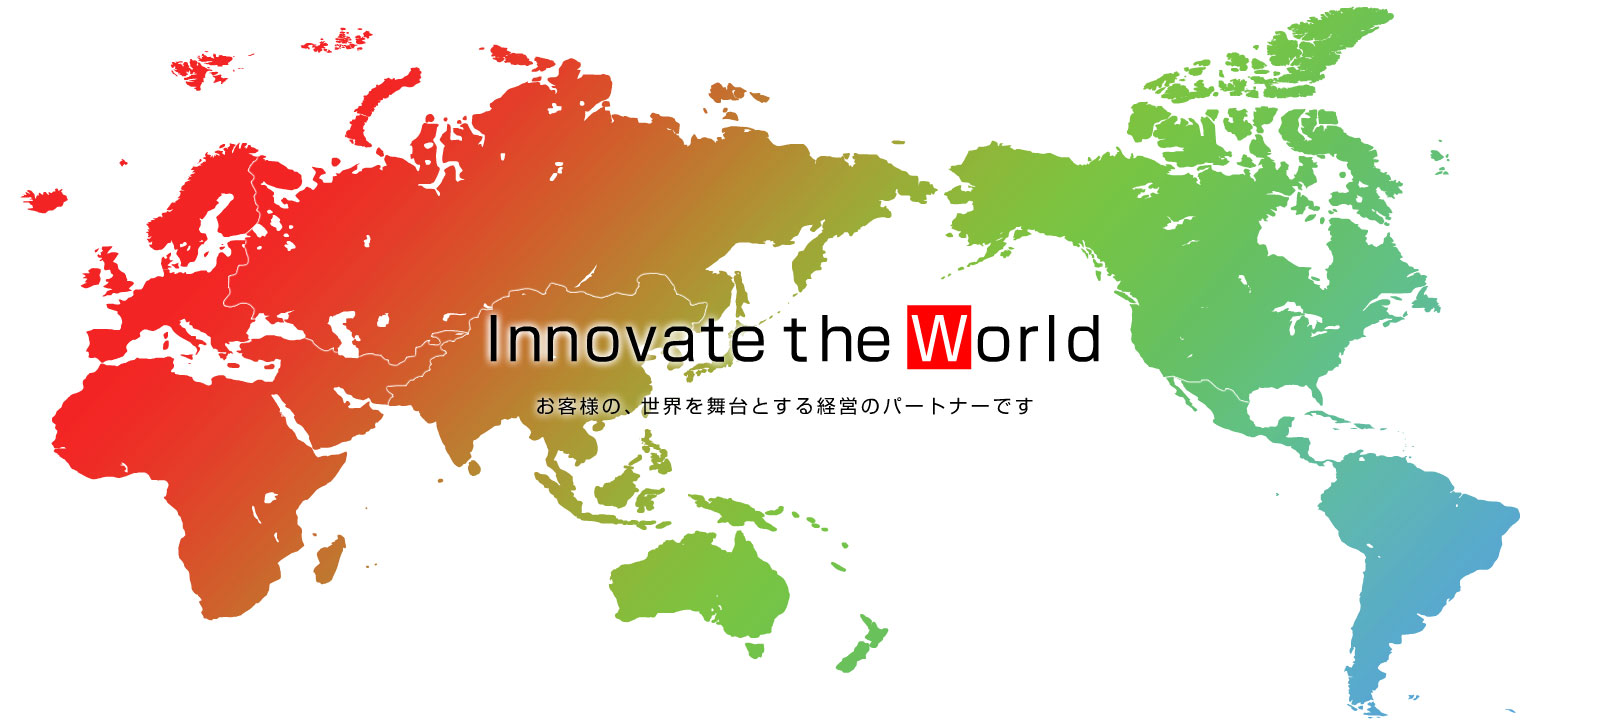 Innovate the World お客様の、世界を舞台とする経営のパートナーです